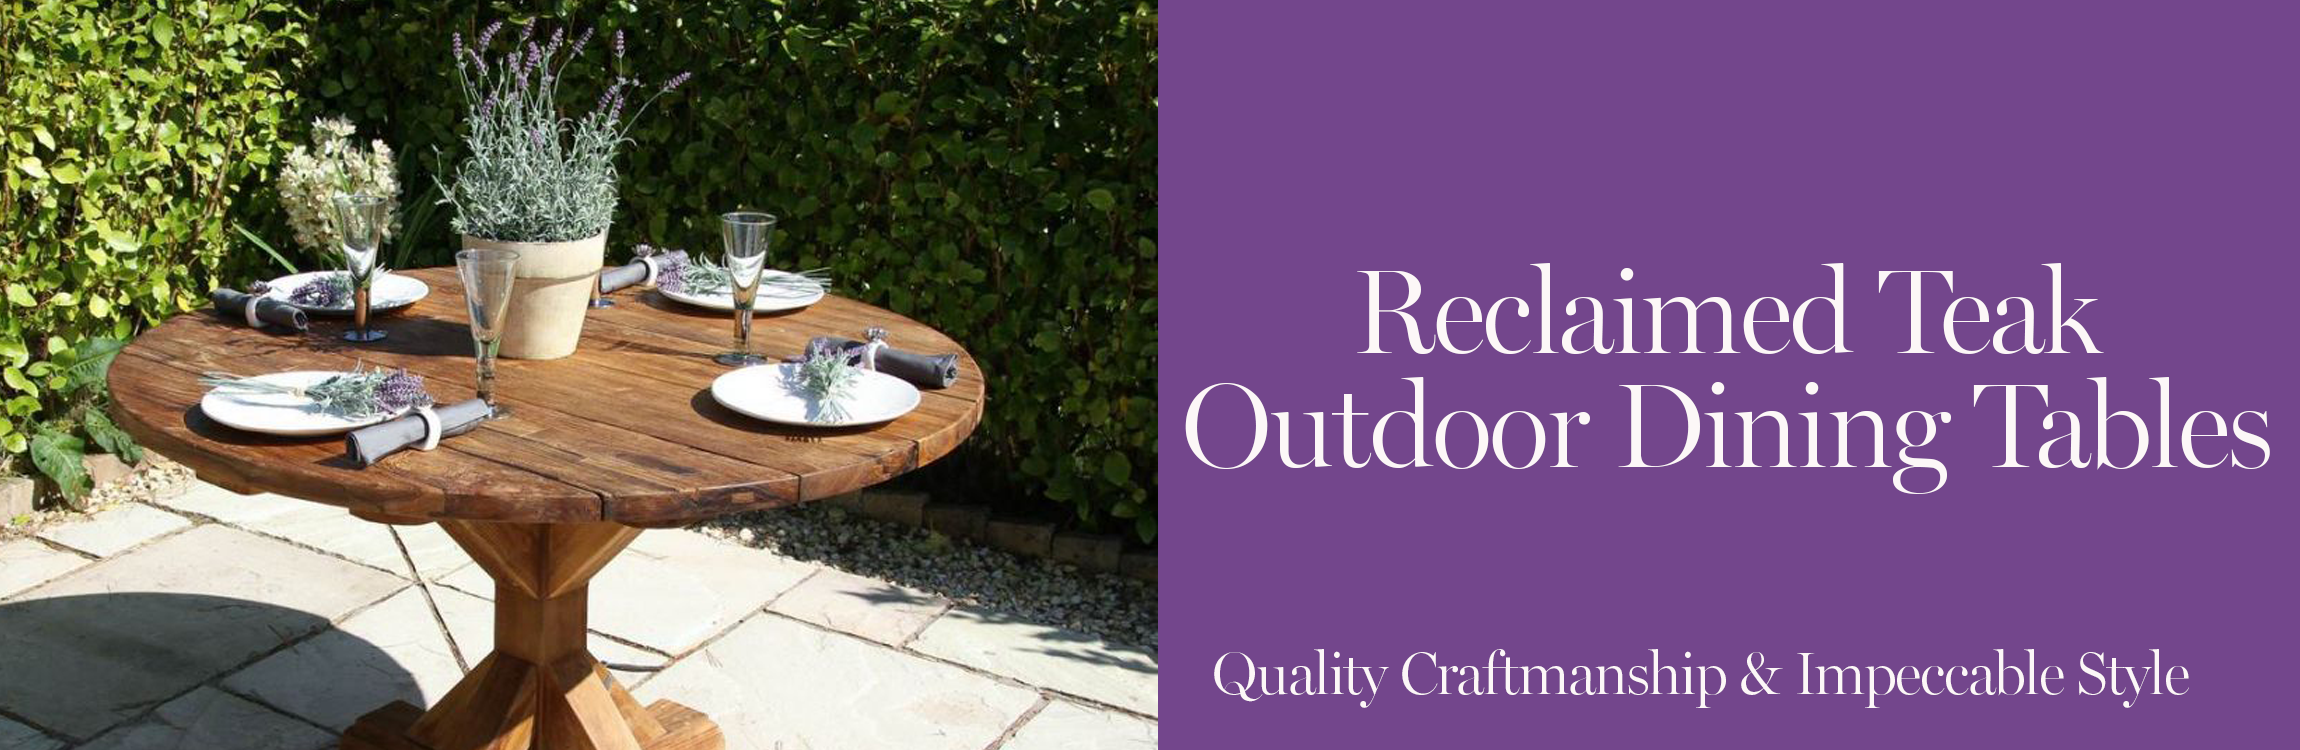 Reclaimed Teak Outdoor Dining Tables